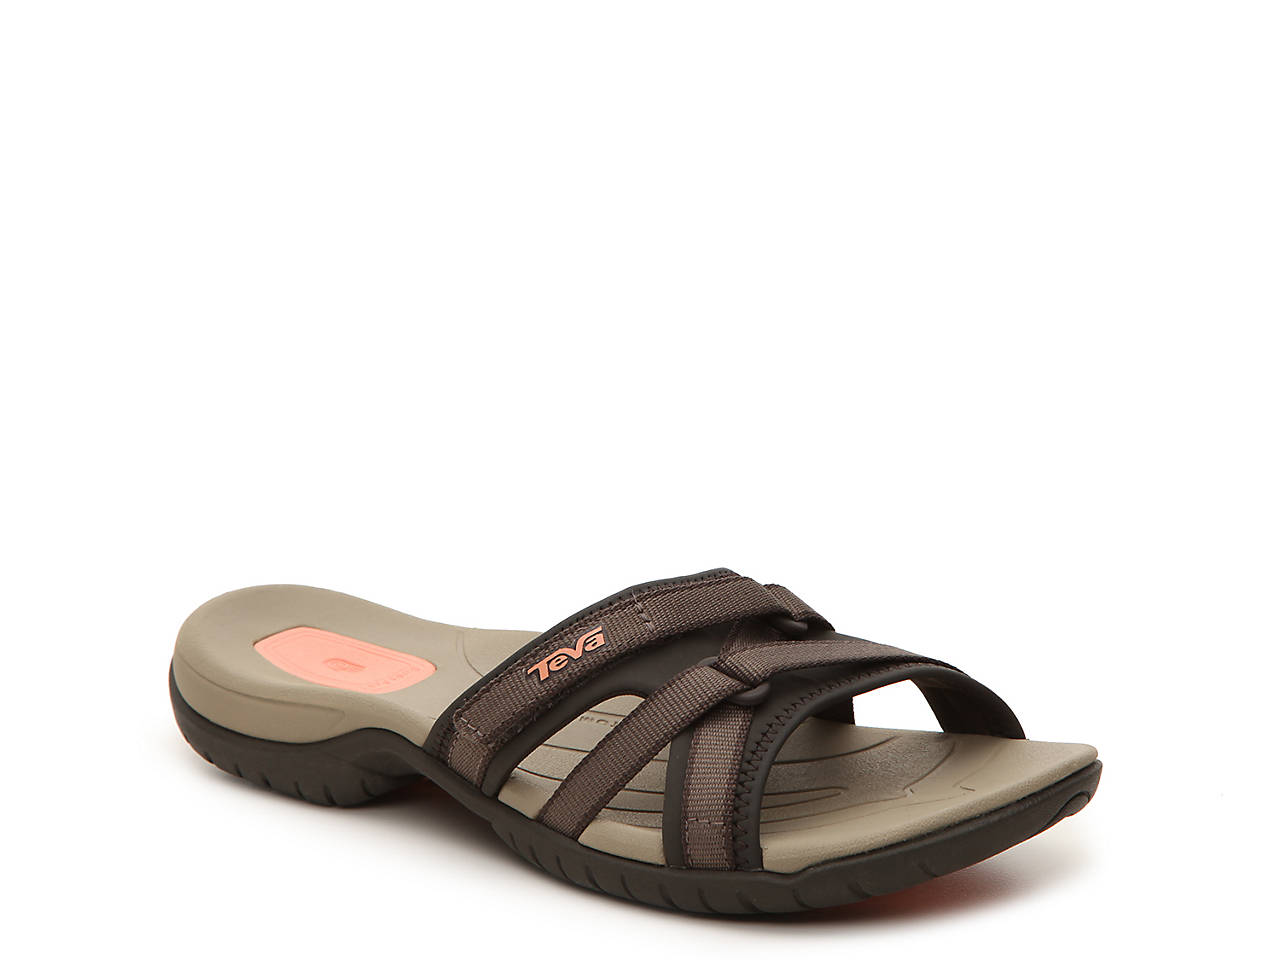 58a32a907 Teva Tirra Slide Sport Sandal Women s Shoes